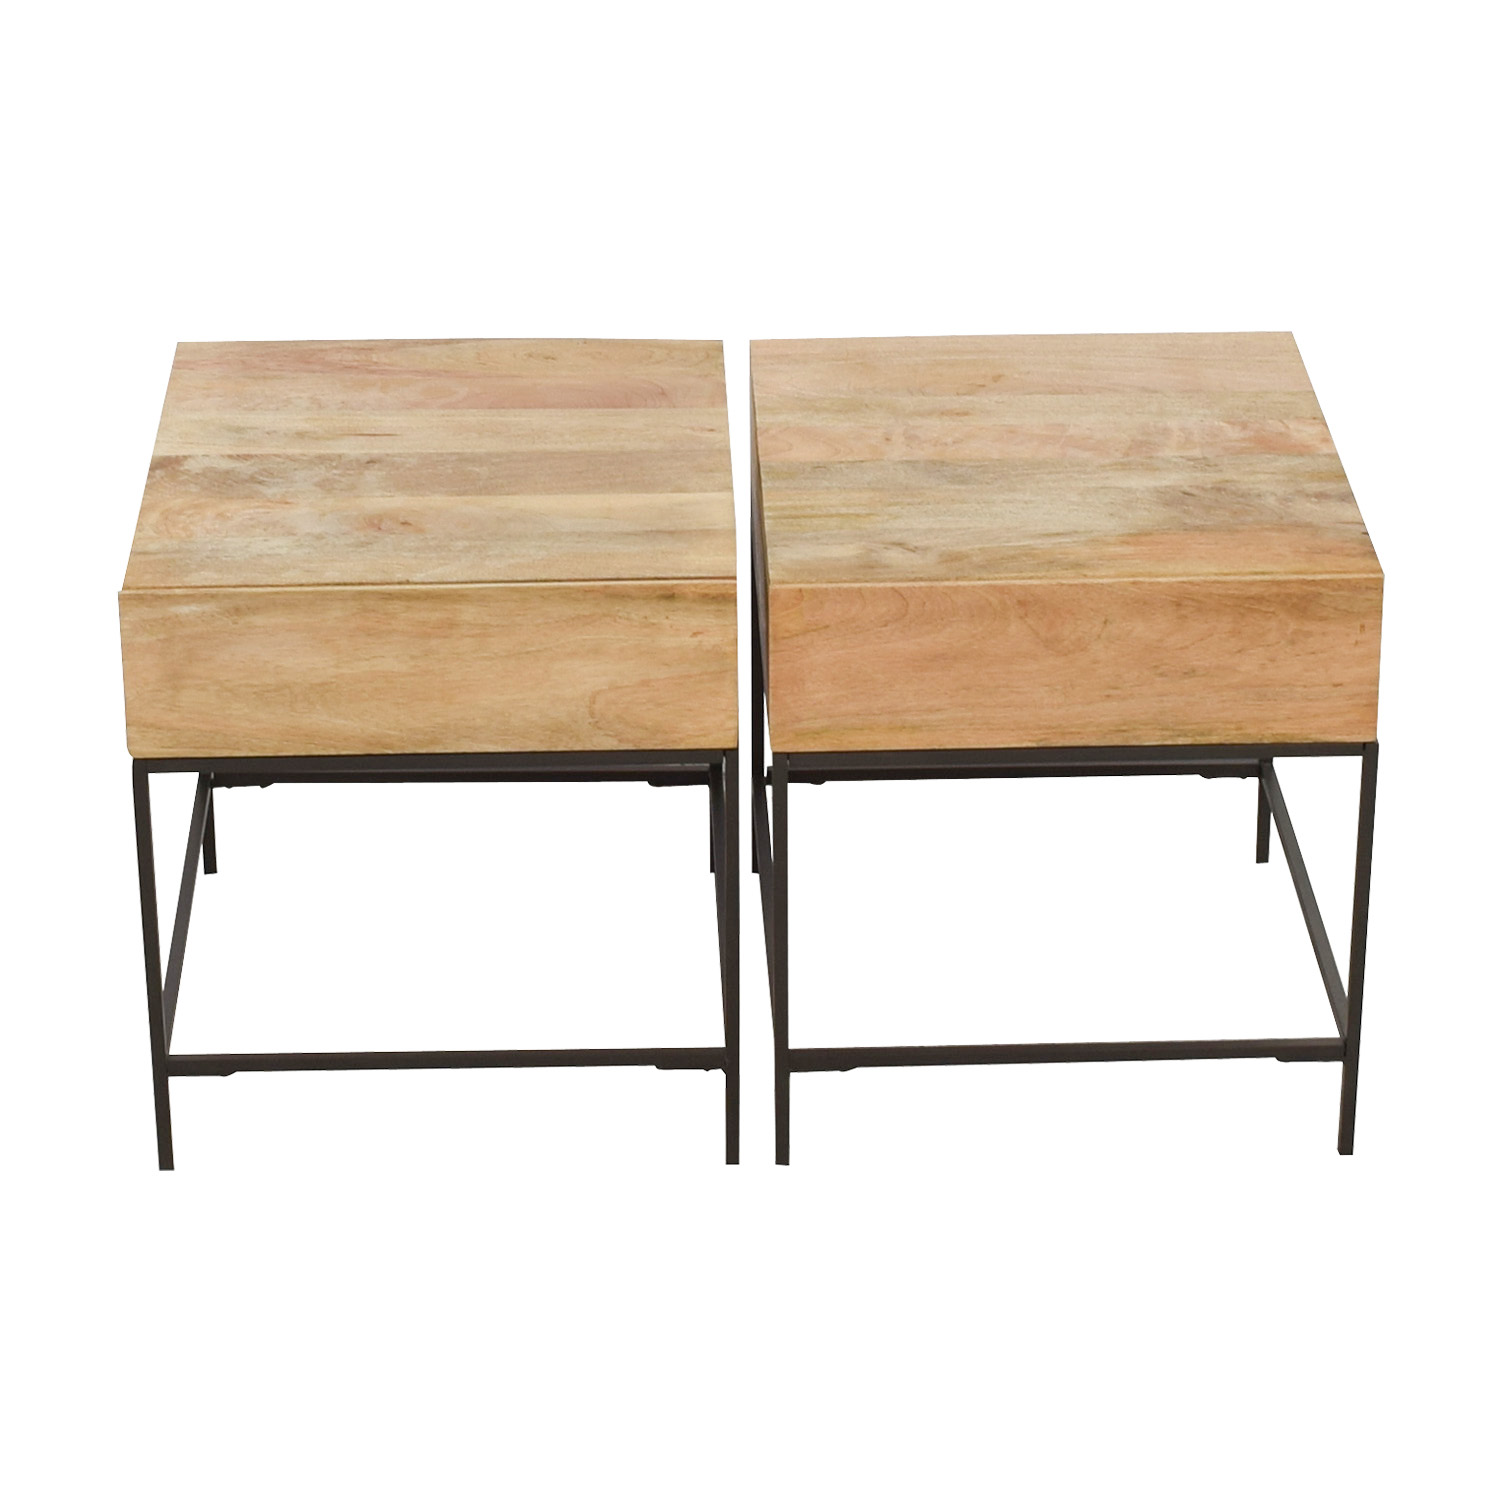 West Elm West Elm Rustic Raw Mango Wood Single-Drawer End Tables price